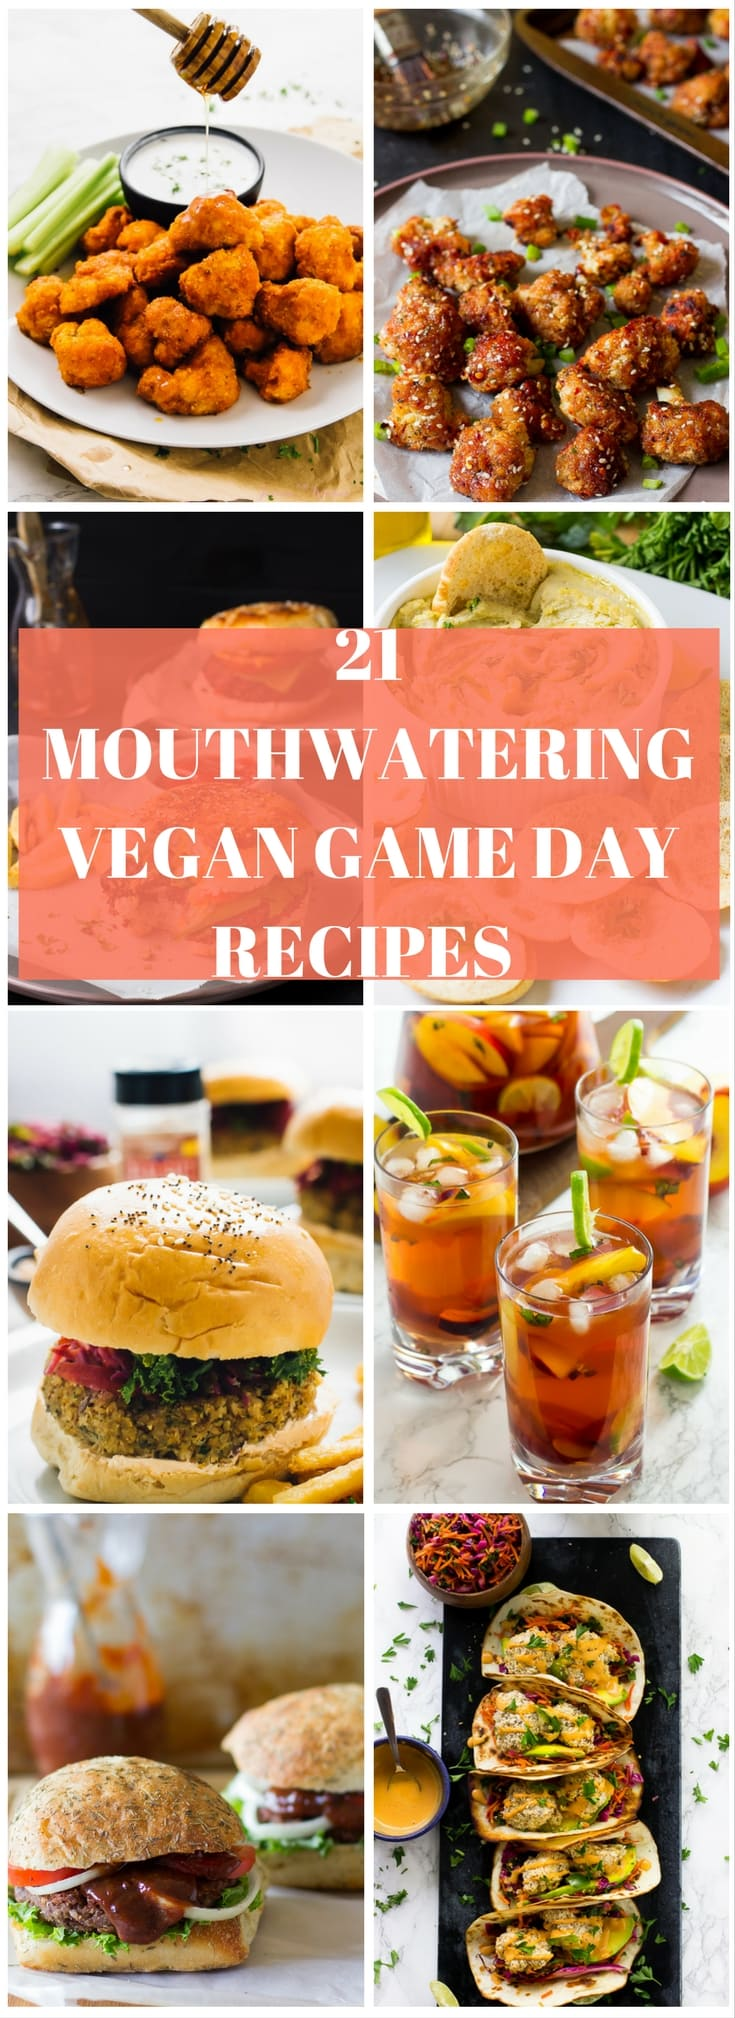 21 Mouthwatering Vegan Game Day Recipes to Score a Touchdown with Your Friends! These recipes are sure to please the crowd! via jessicainthekitchen.com